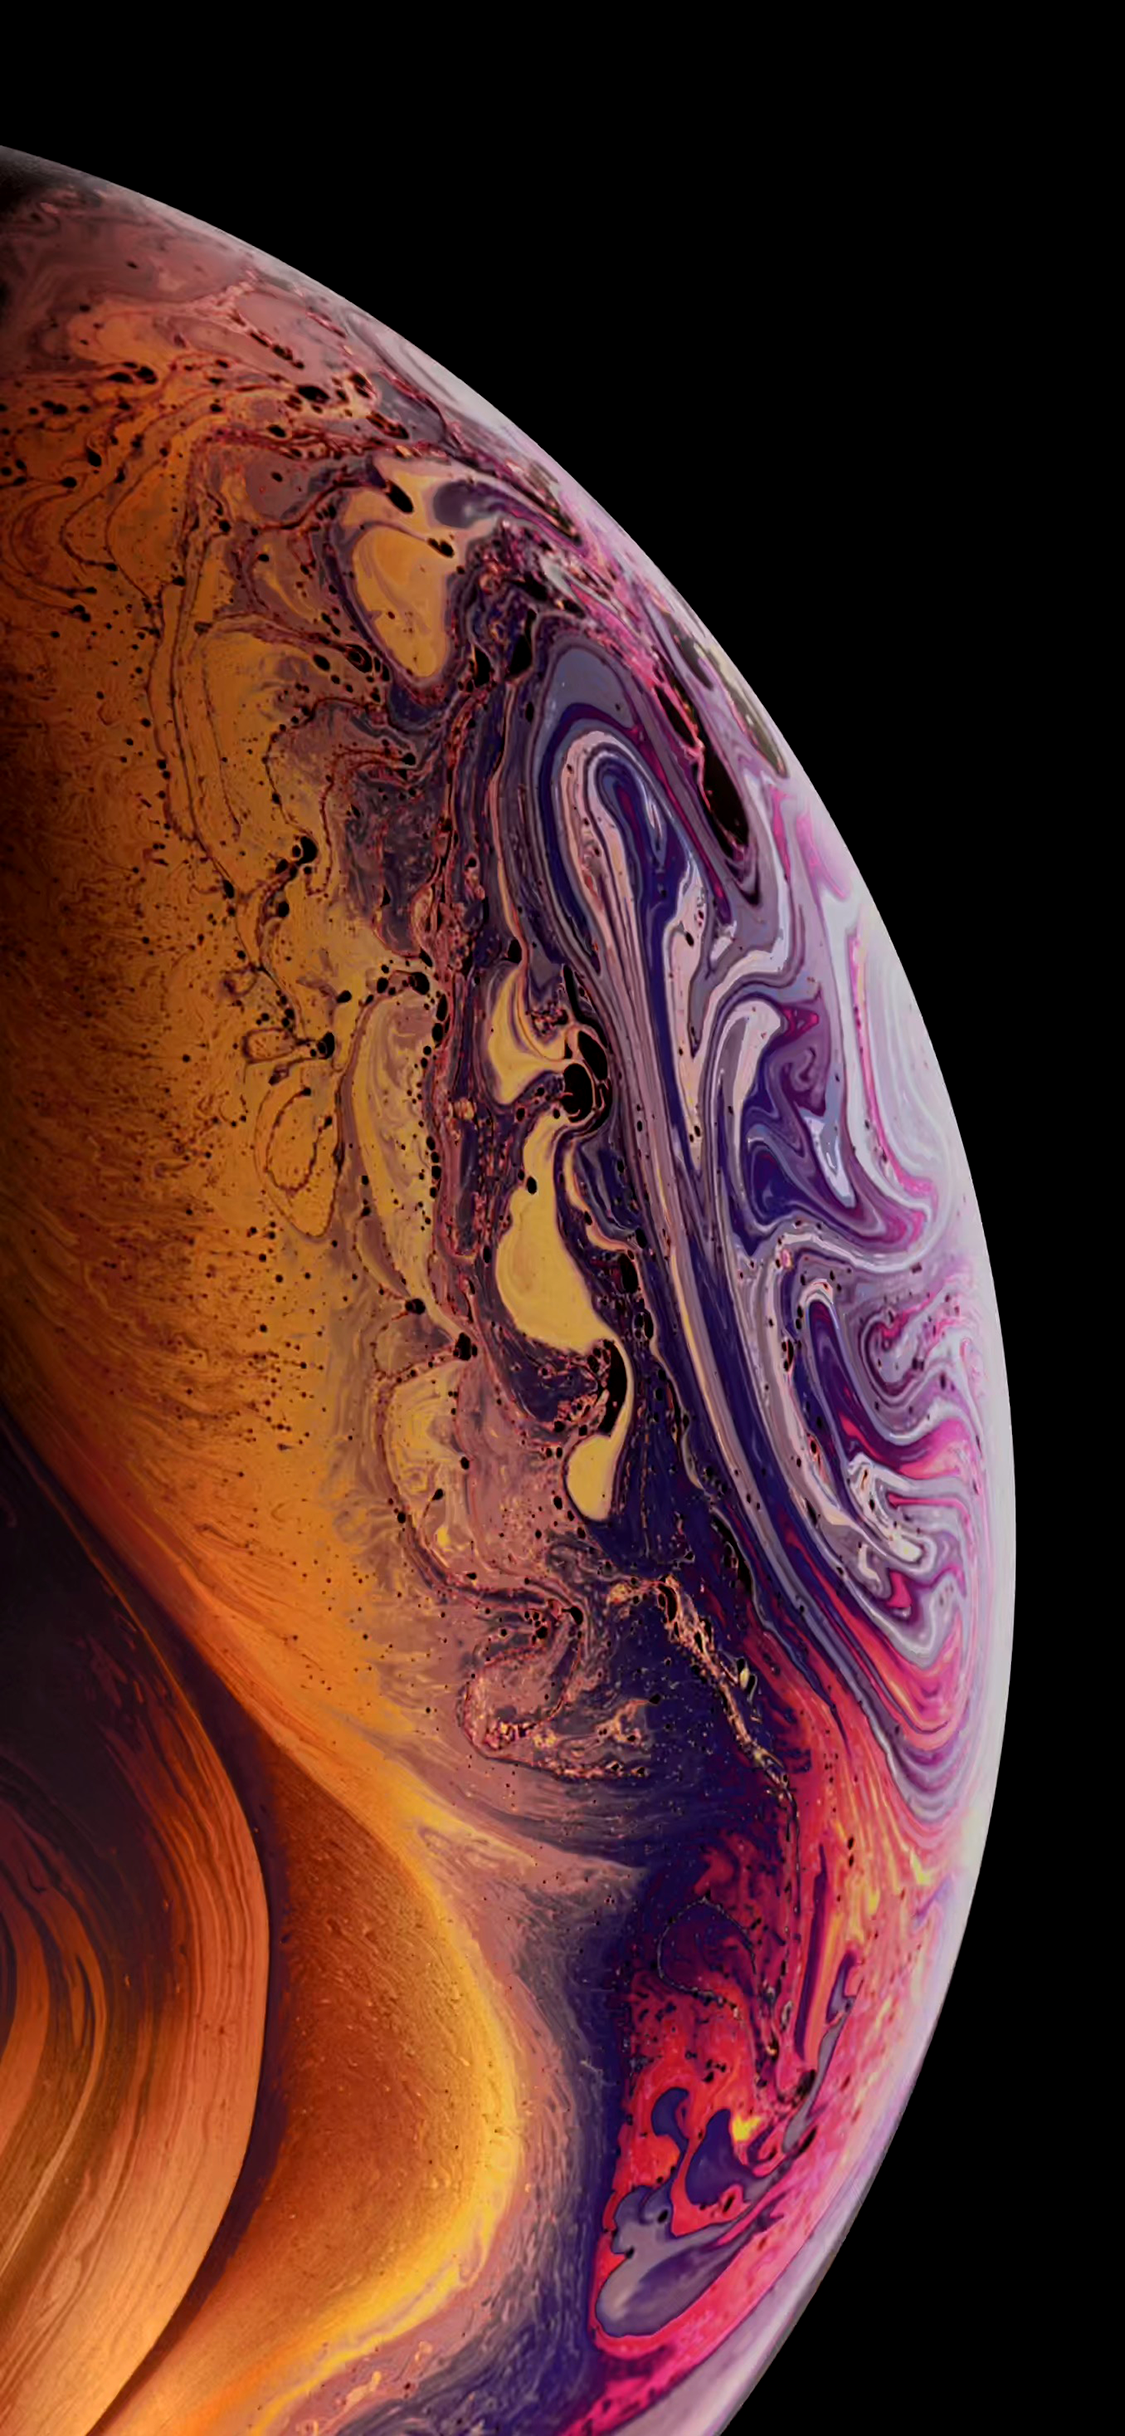 Iphone Xs Max Original Wallpaper 4k Ideas 4k Iphone Wallpaper Ios Apple Wallpaper Iphone Original Iphone Wallpaper